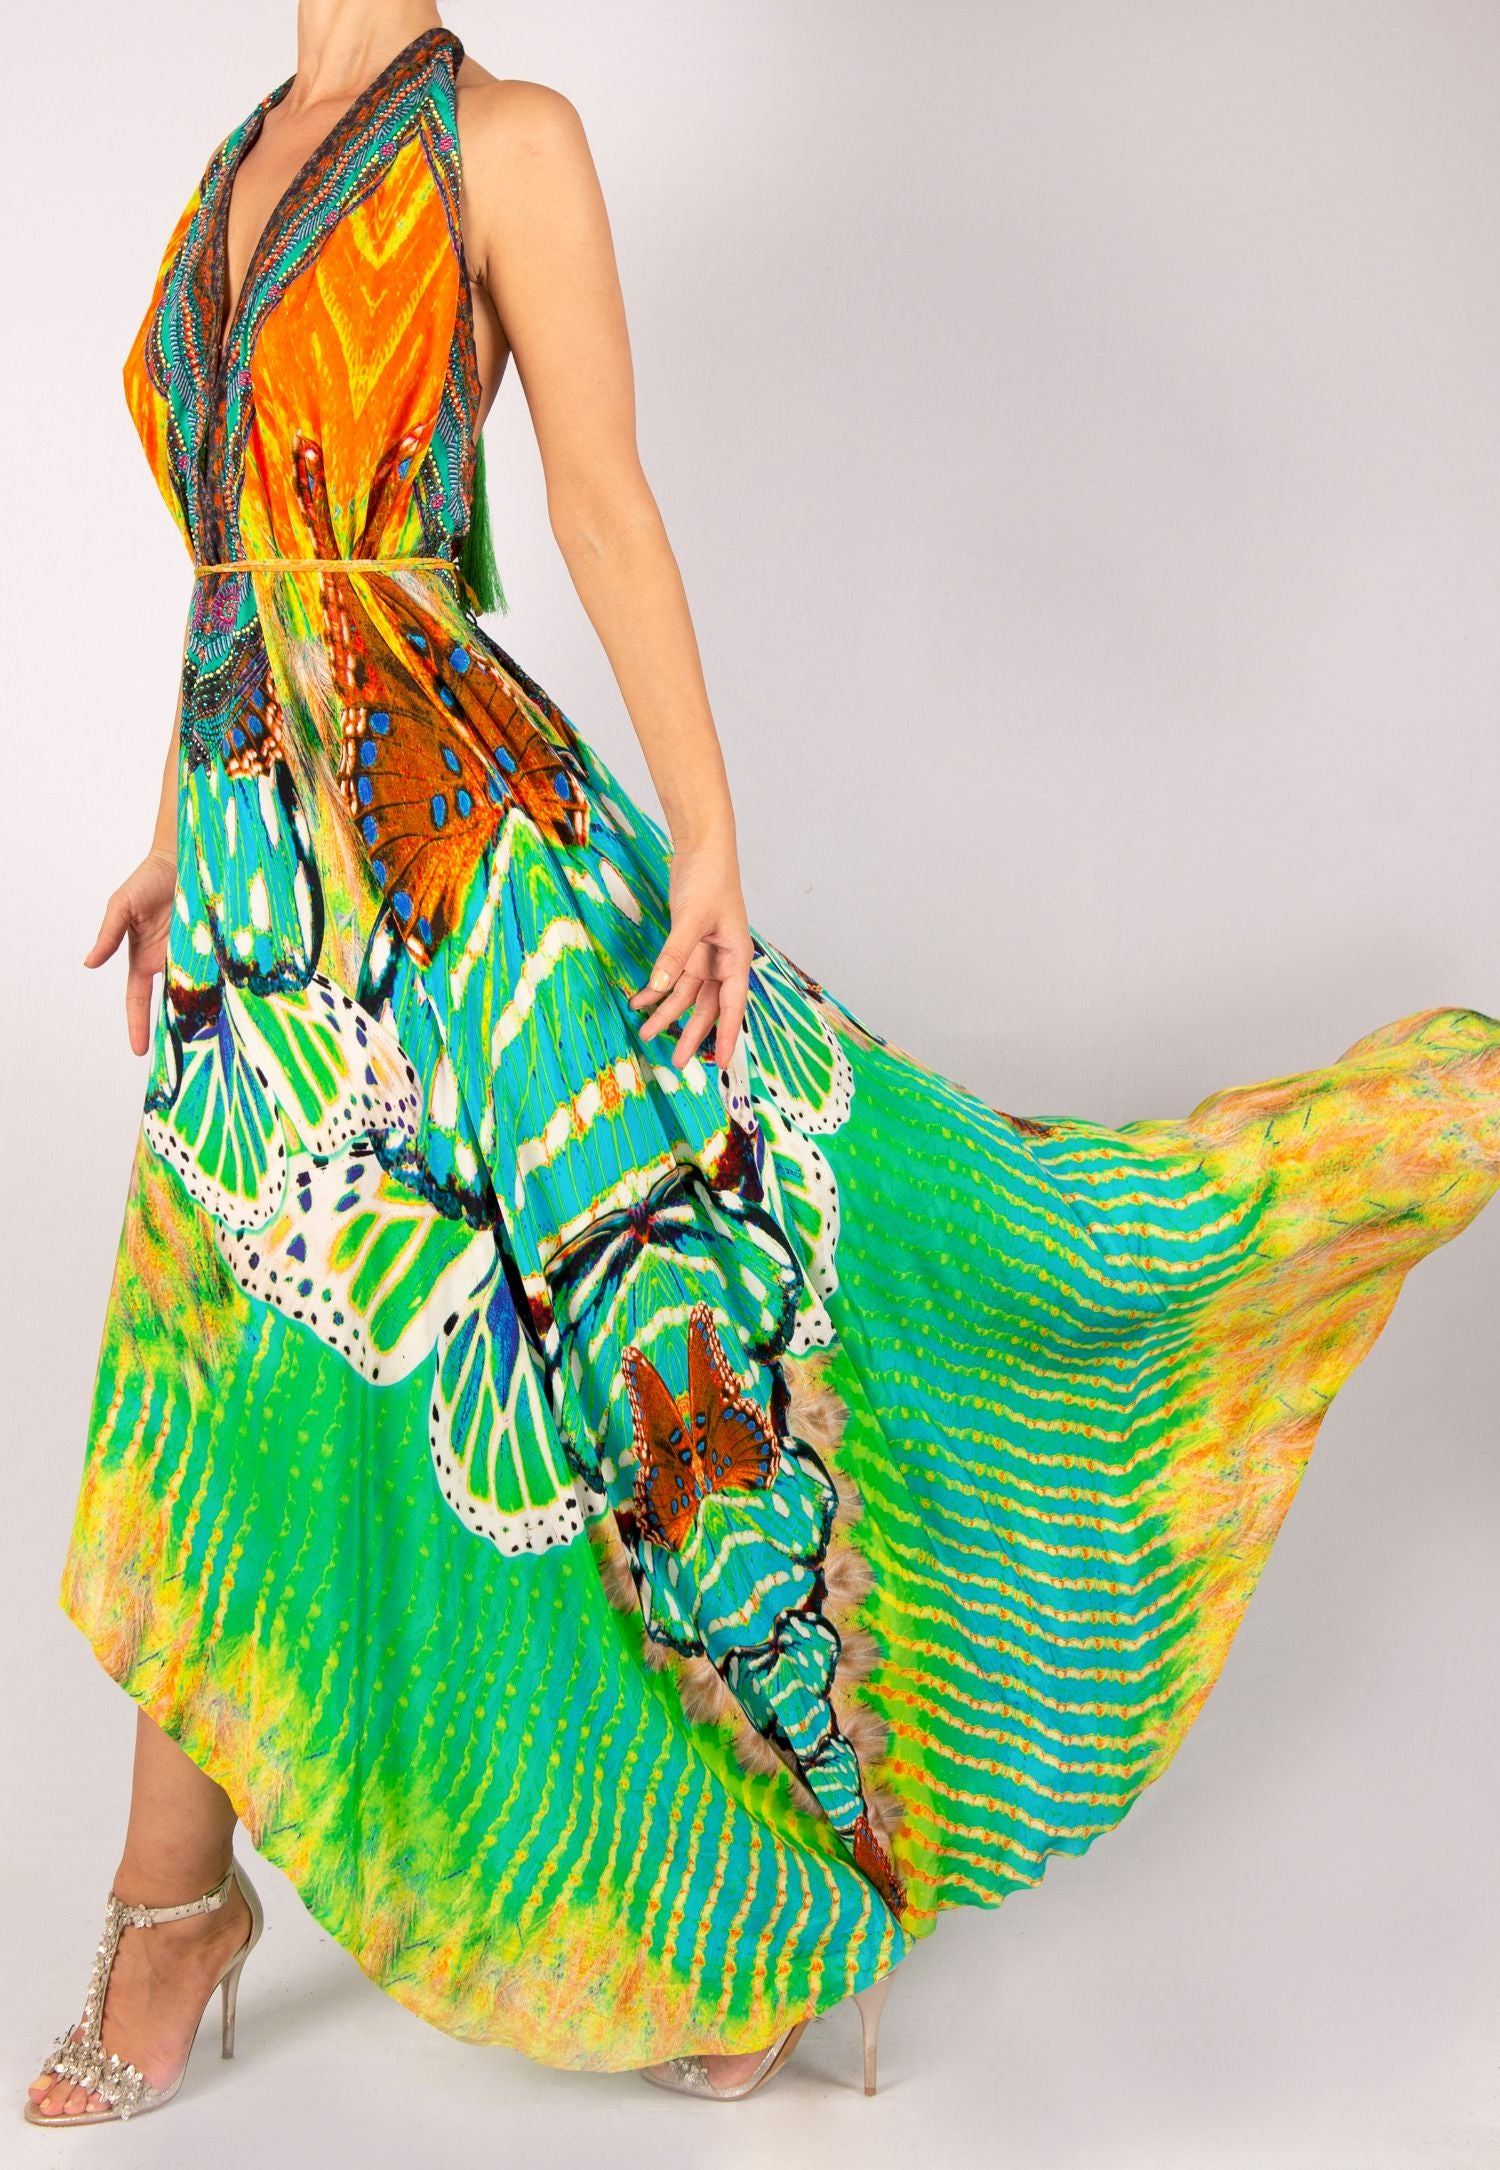 SHAHIDA PARIDES CONVERTIBLE BUTTERFLY MAXI DRESS RESORTWEAR